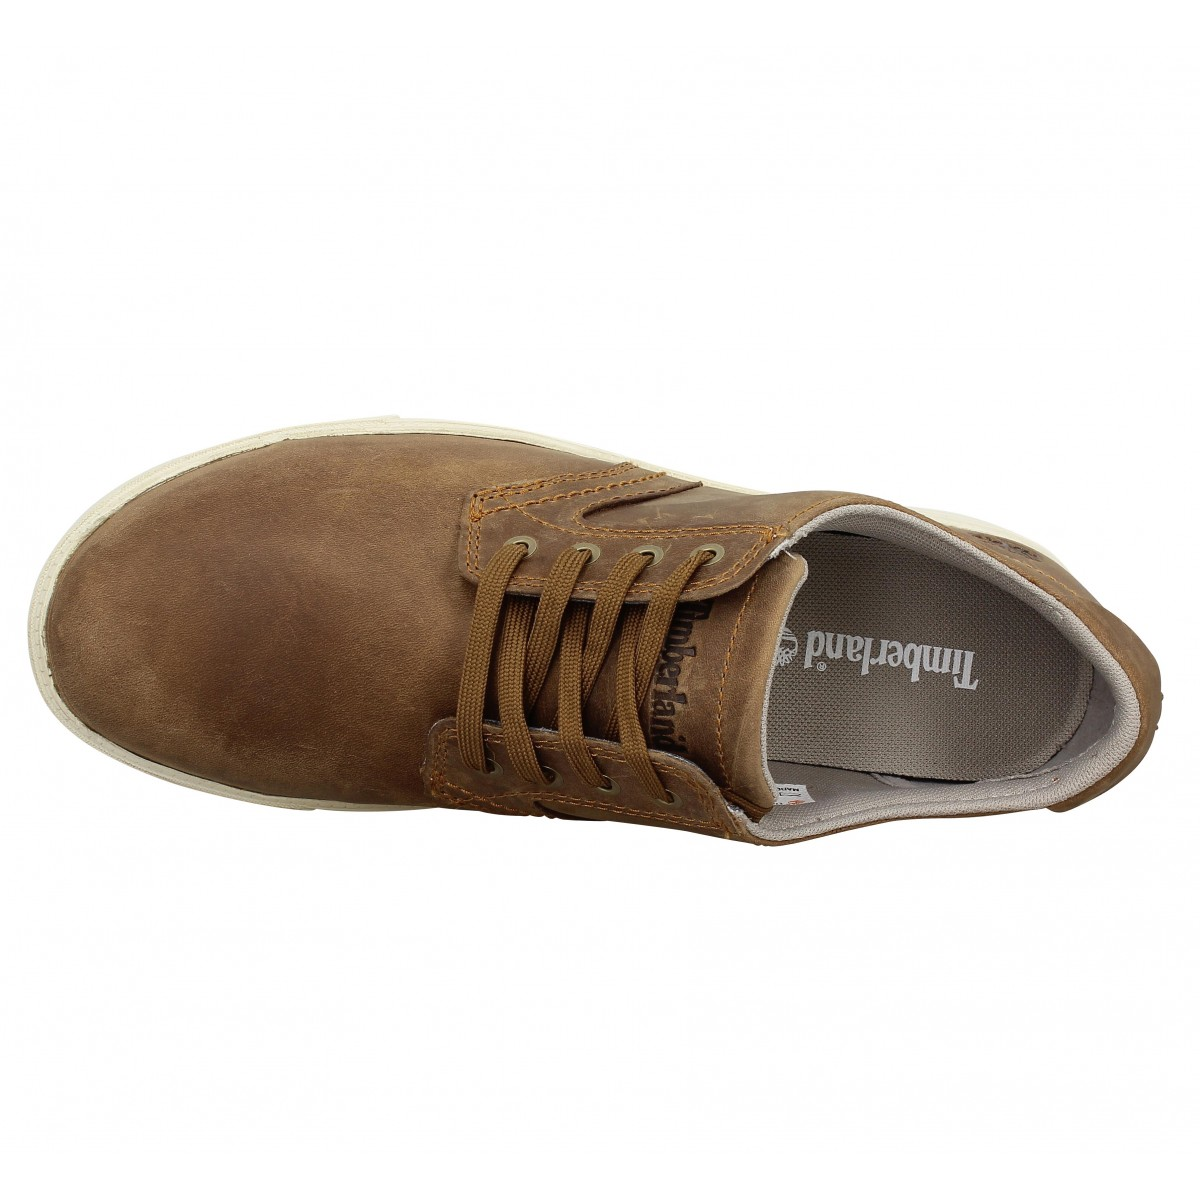 tong cuir homme timberland